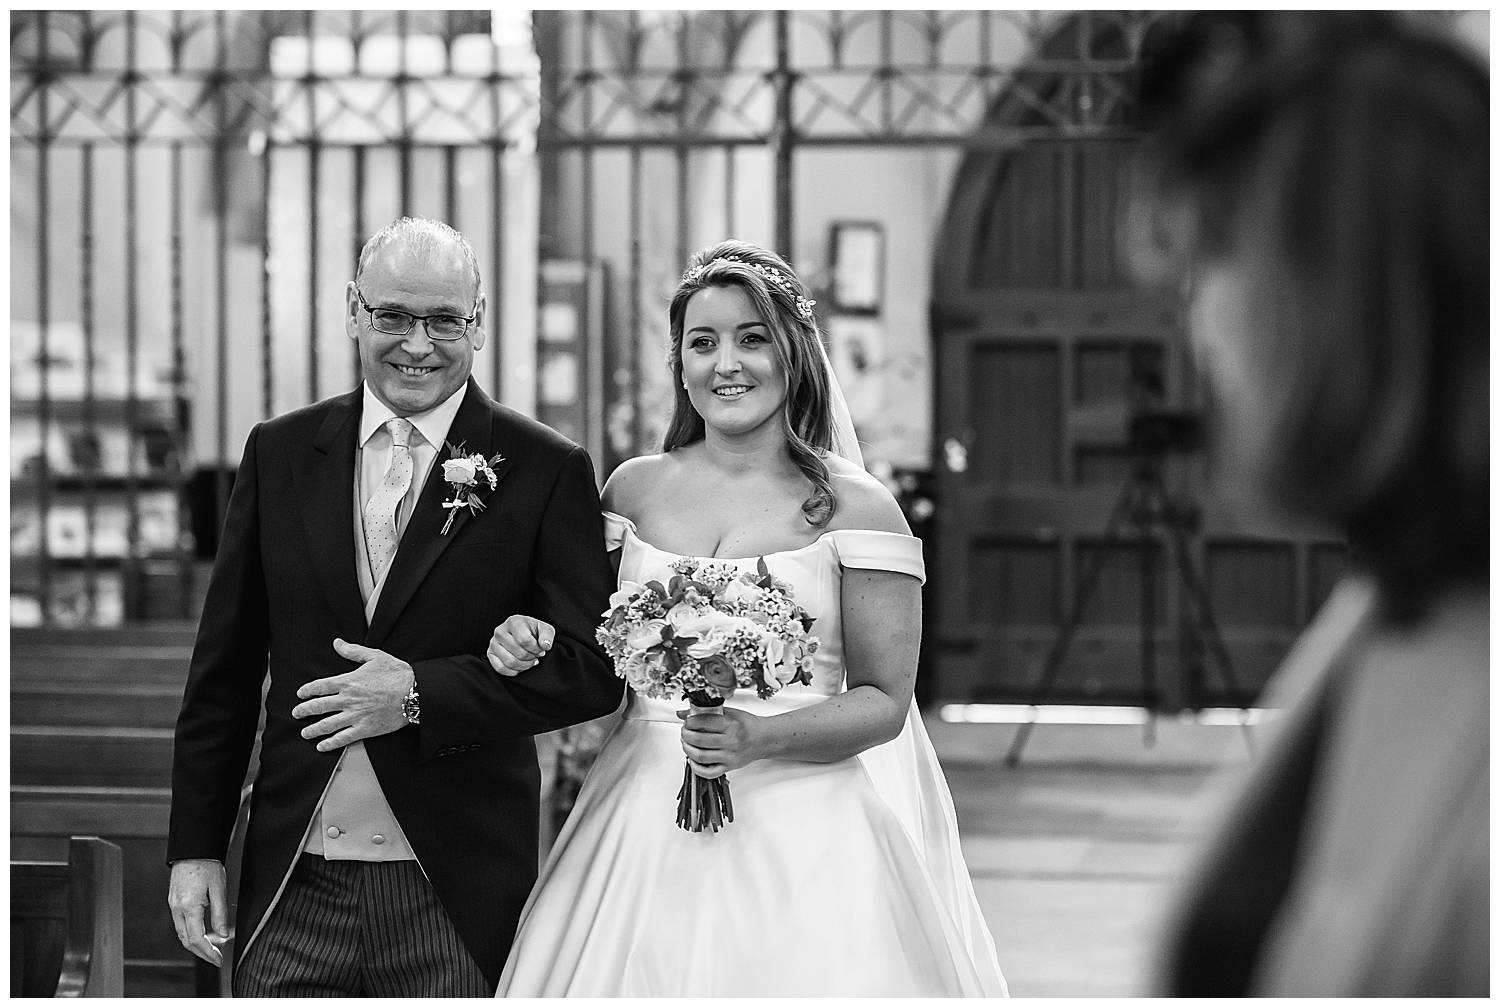 bride walks down the aisle at her London wedding